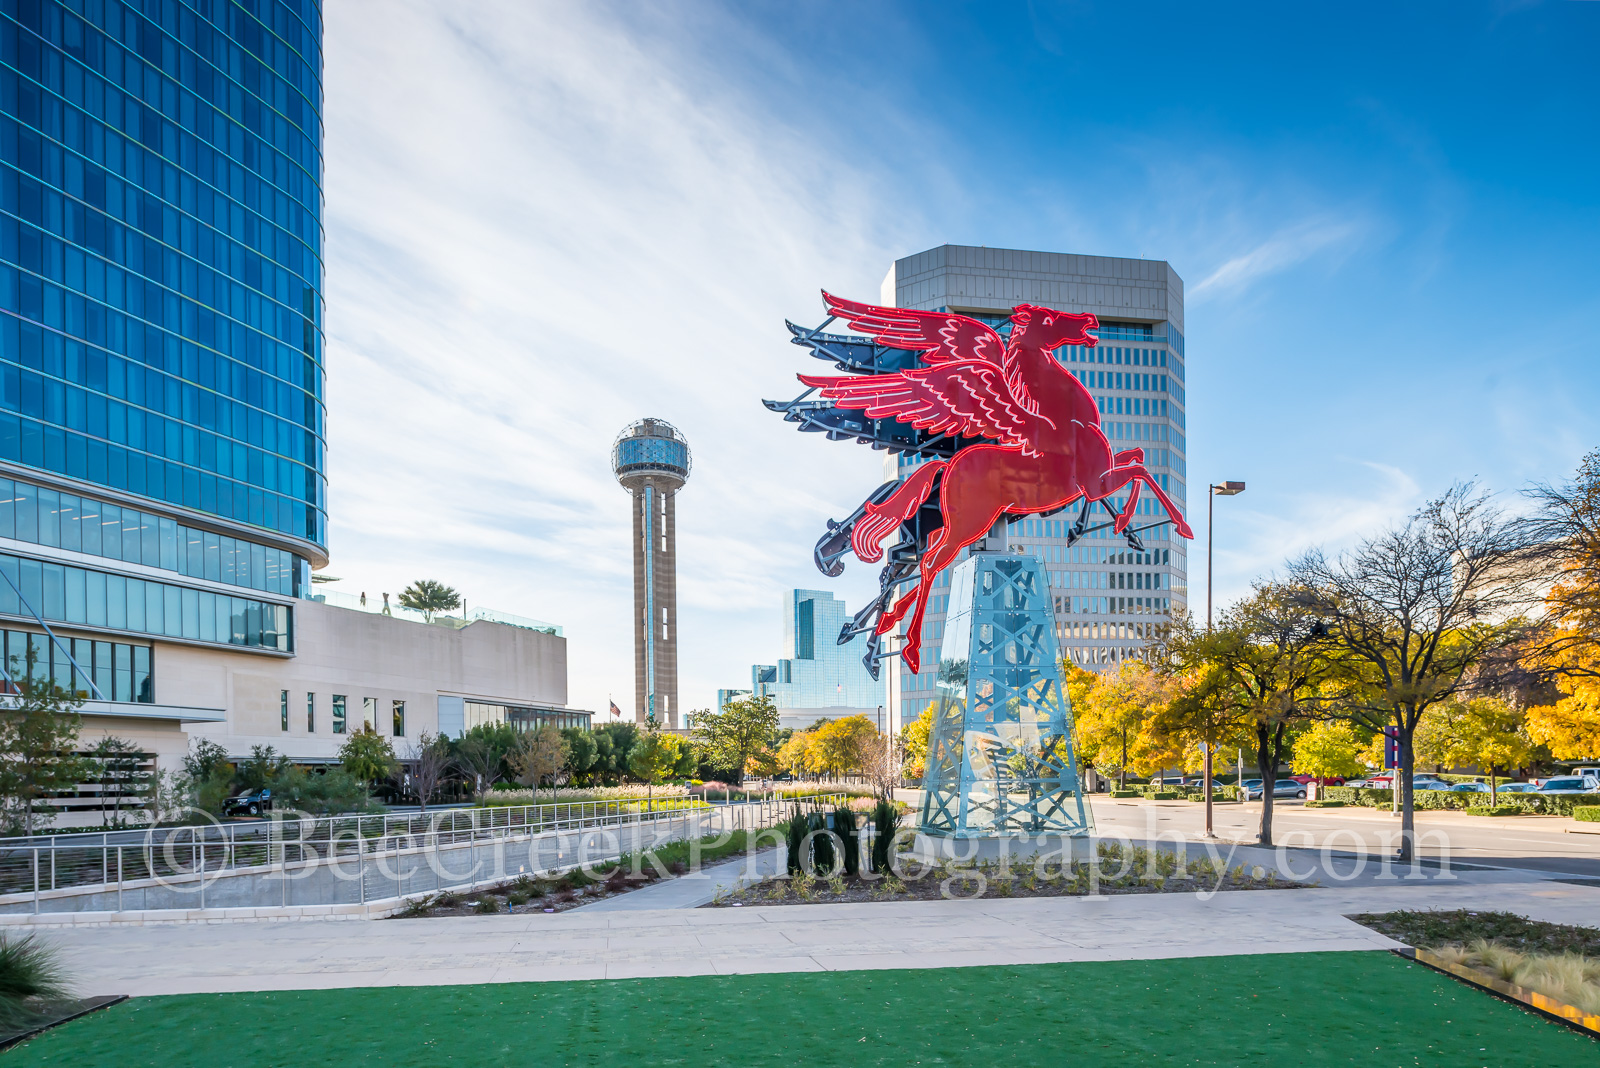 Dallas, Magnolia Hotel, Magnolia Oil company. symbol, Pegasus, cityscape, cityscapes, downtown, flying horse, neon, neon sign, oil derrick, red, photo